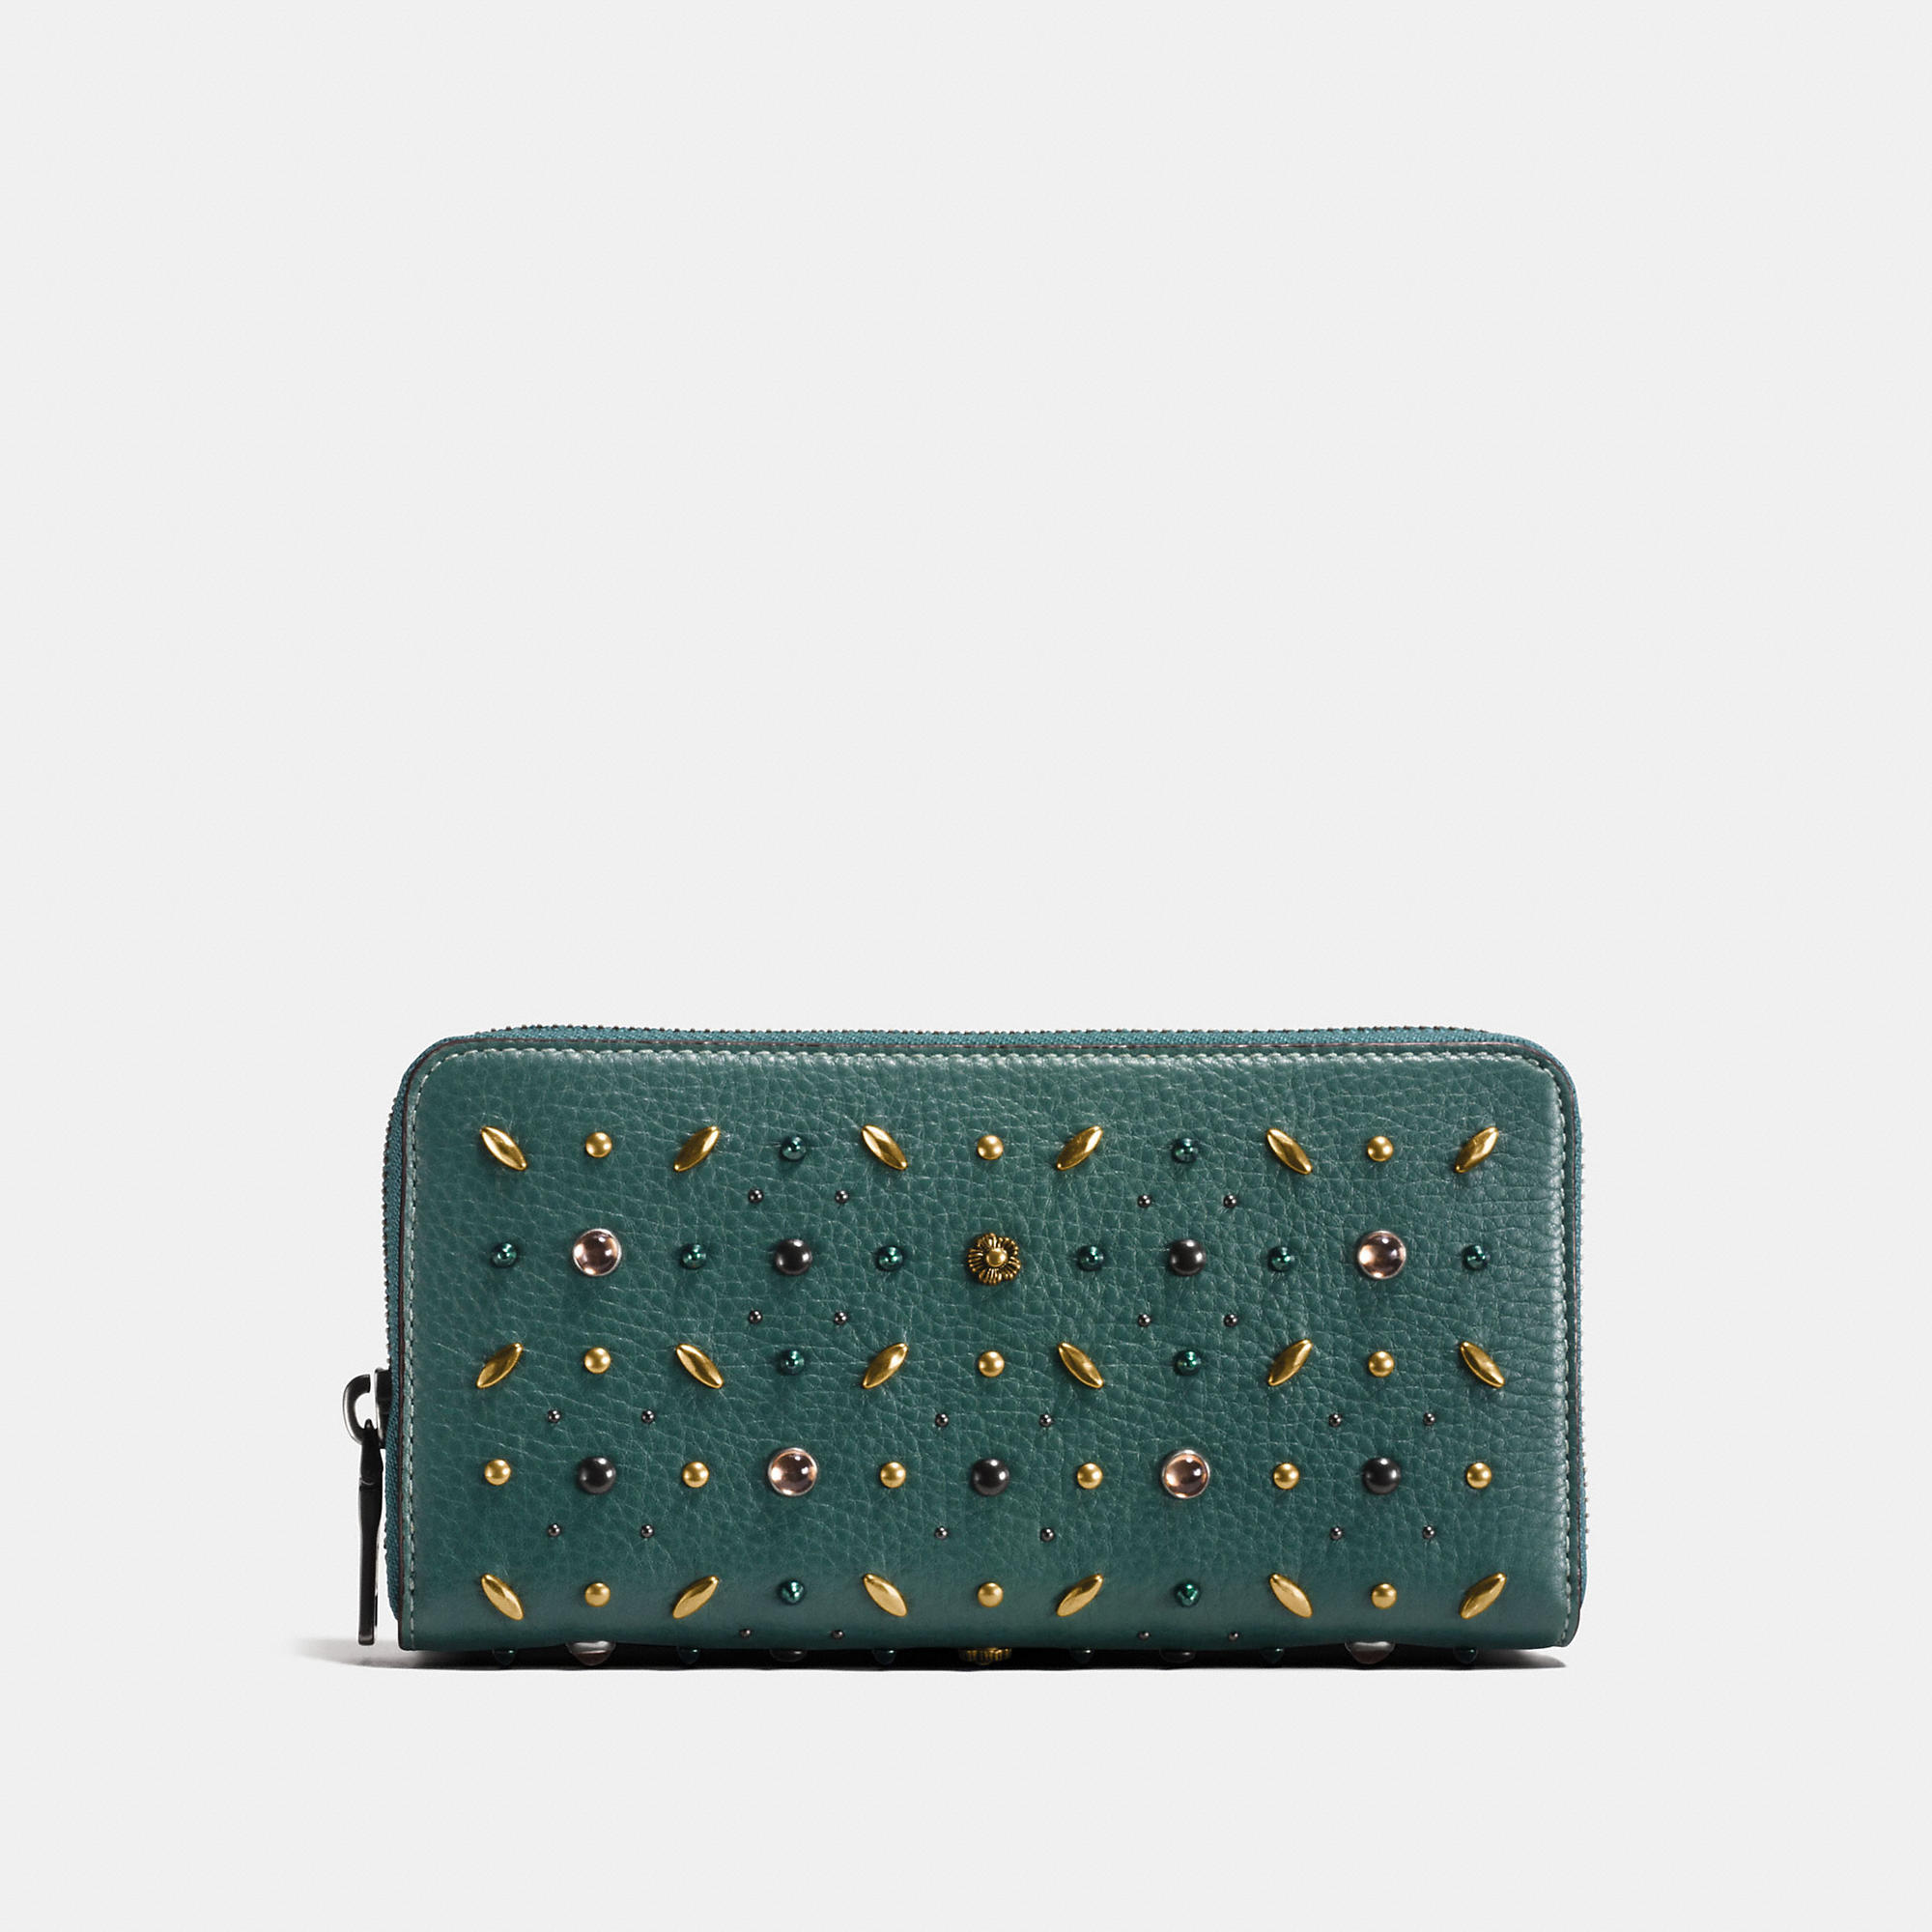 Coach Accordion Zip Wallet In Natural Pebble Leather With Prairie Rivets